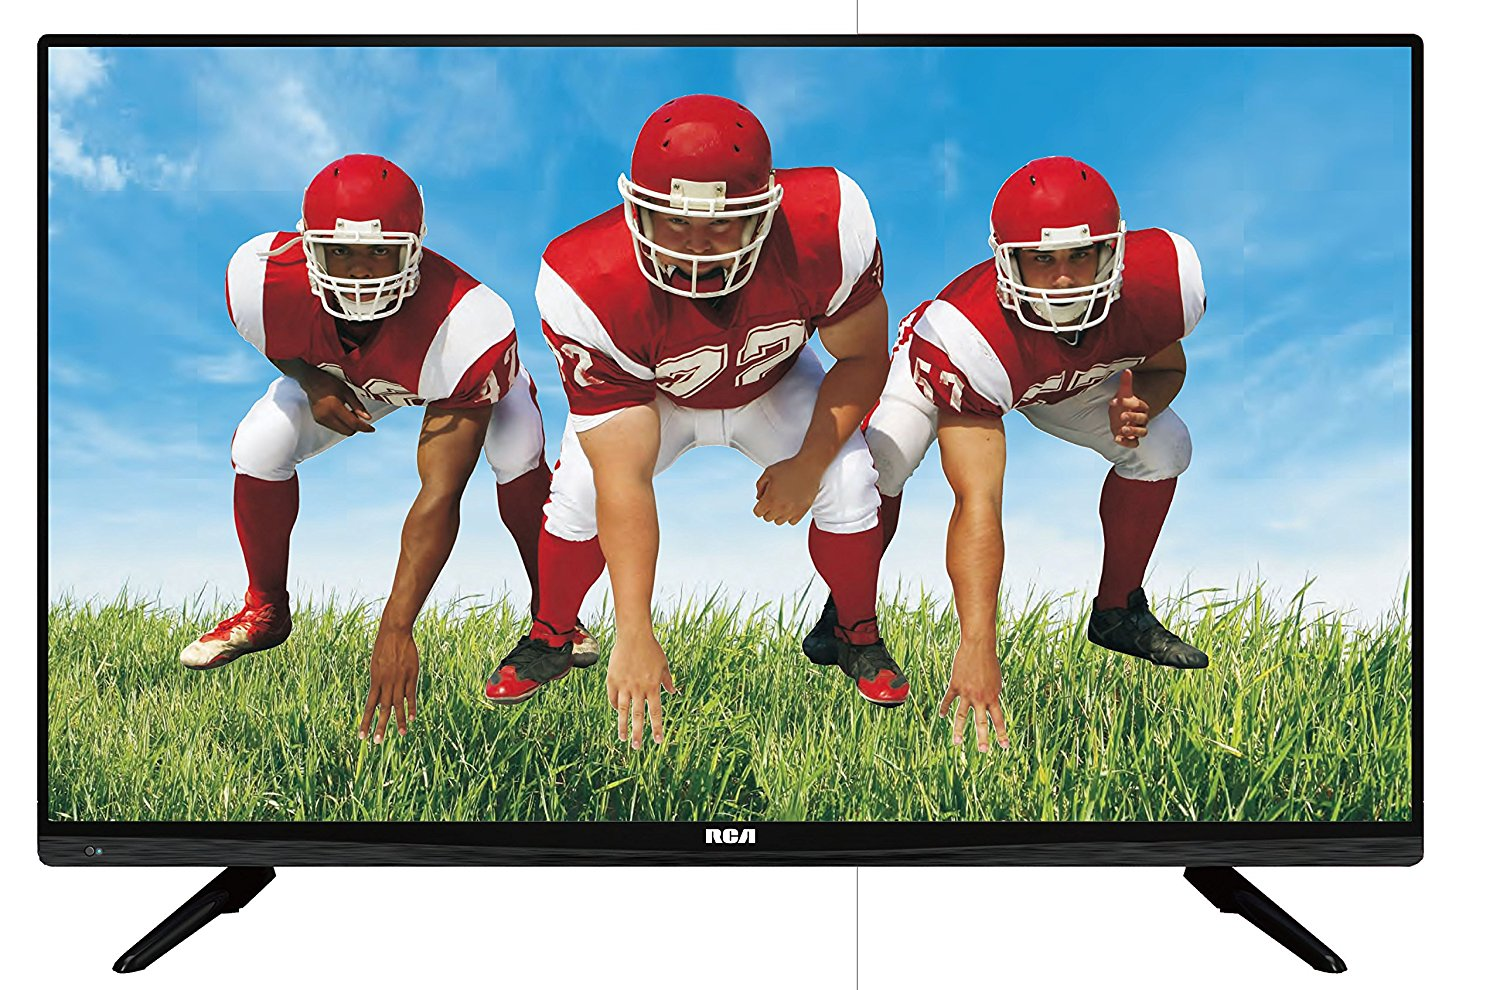 RCA TV Reviews: Quality Pictures at Budget Prices